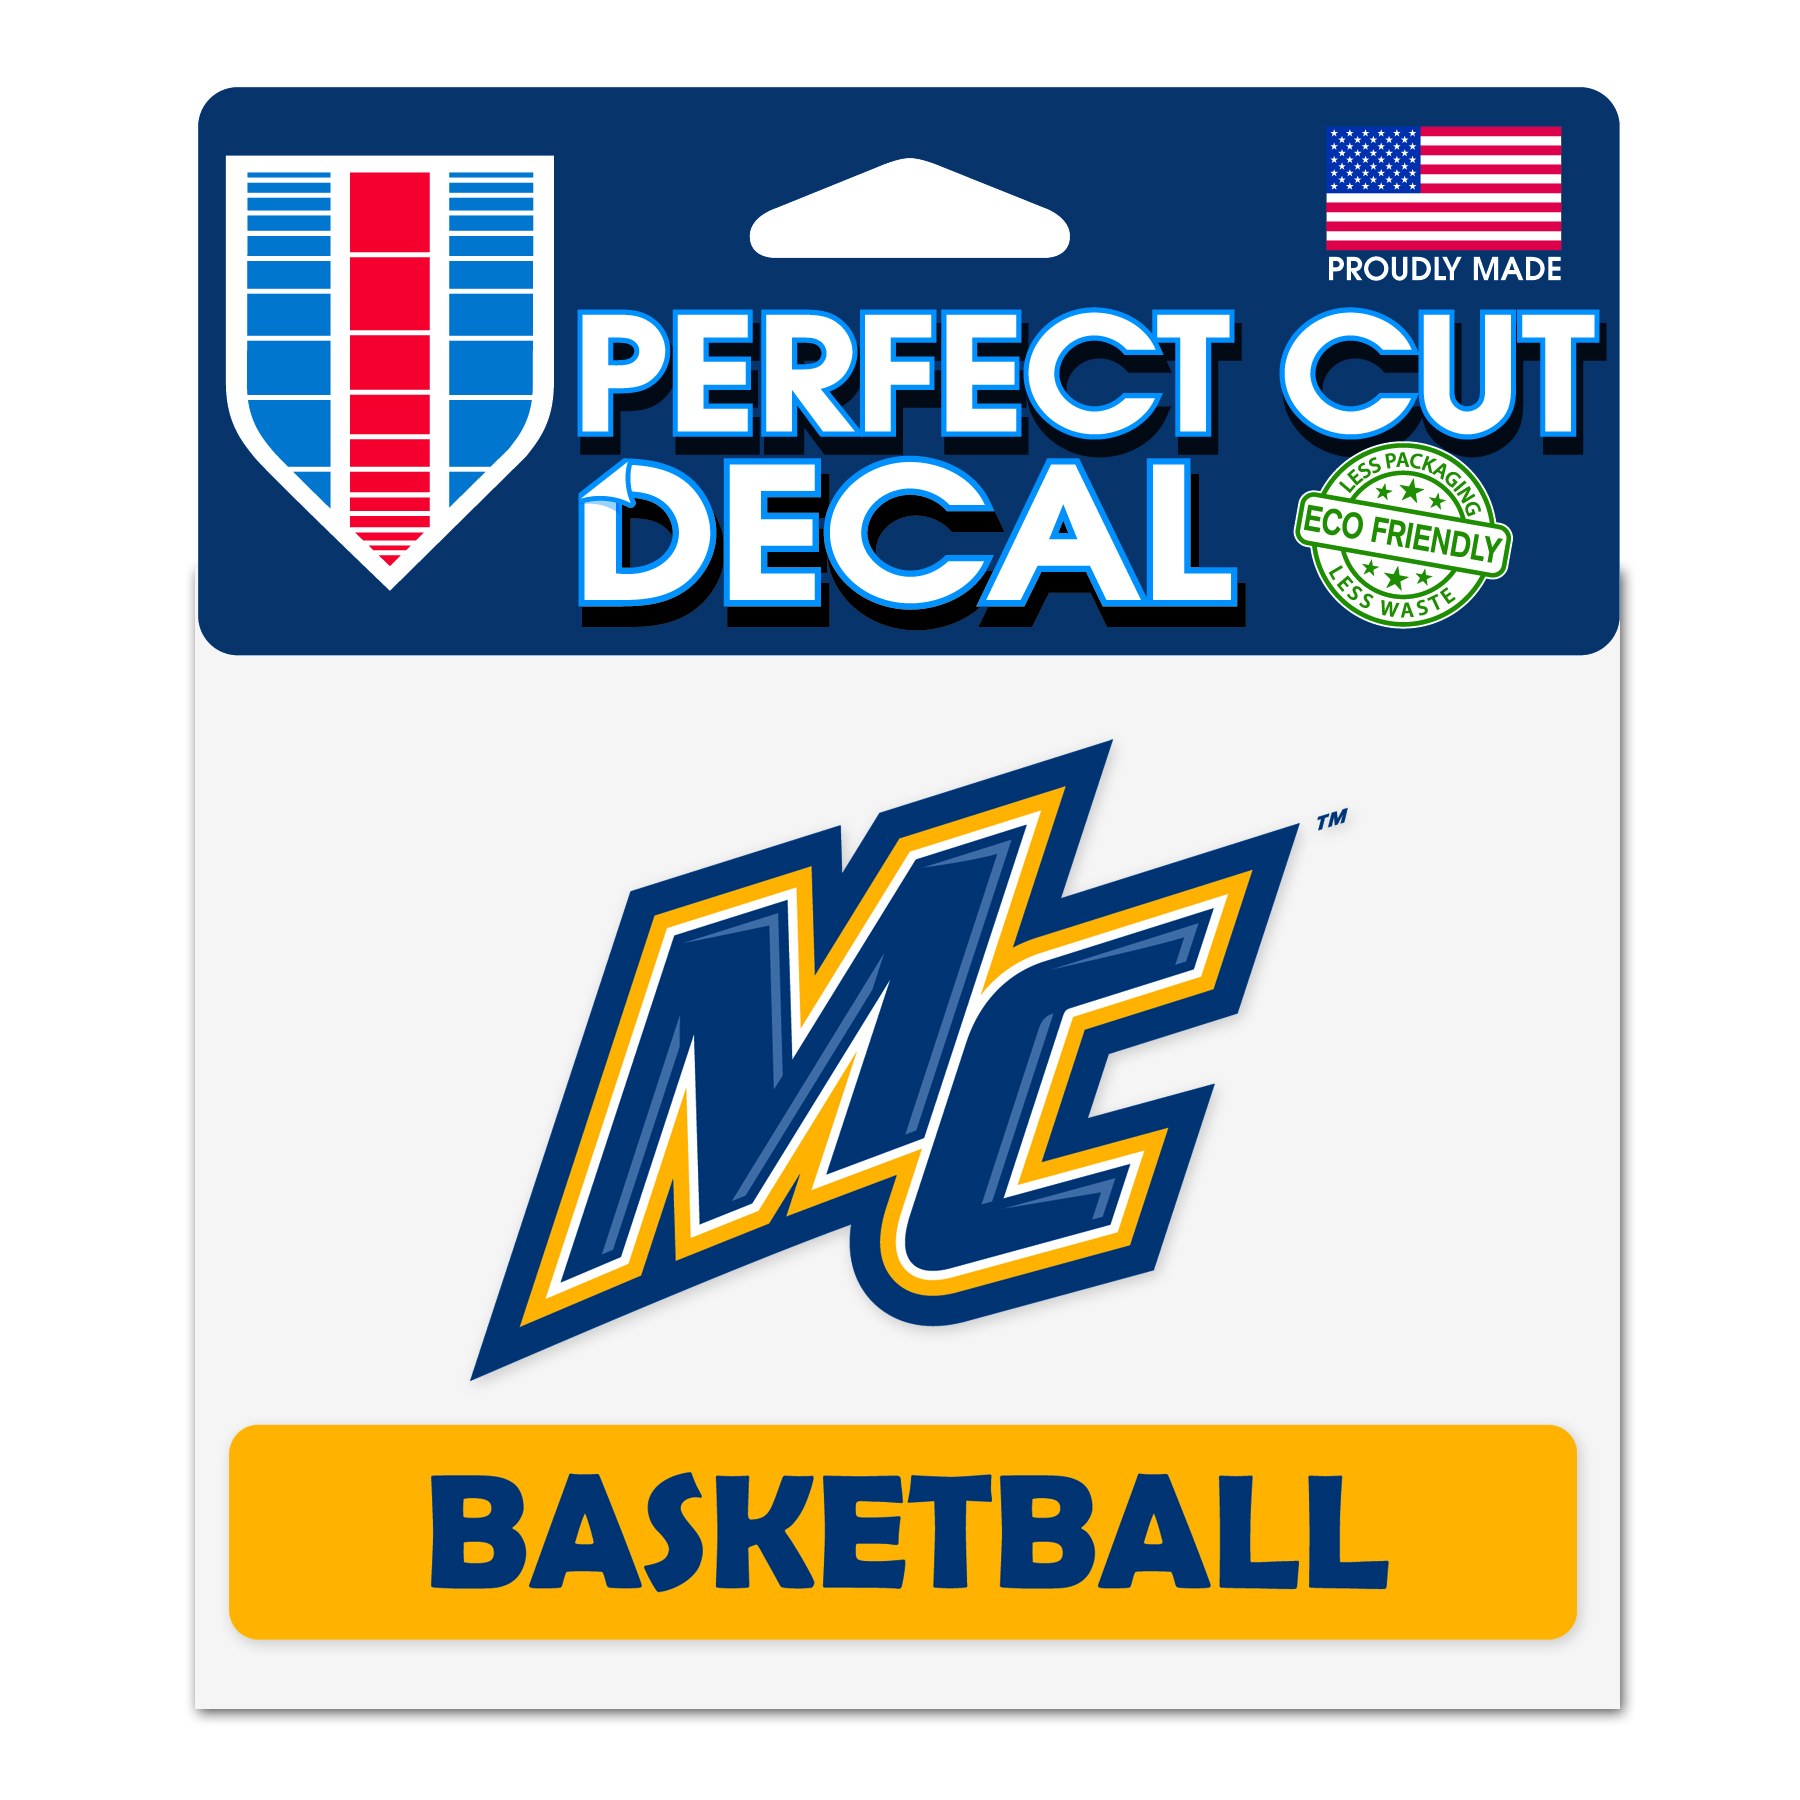 Decal - Basketball